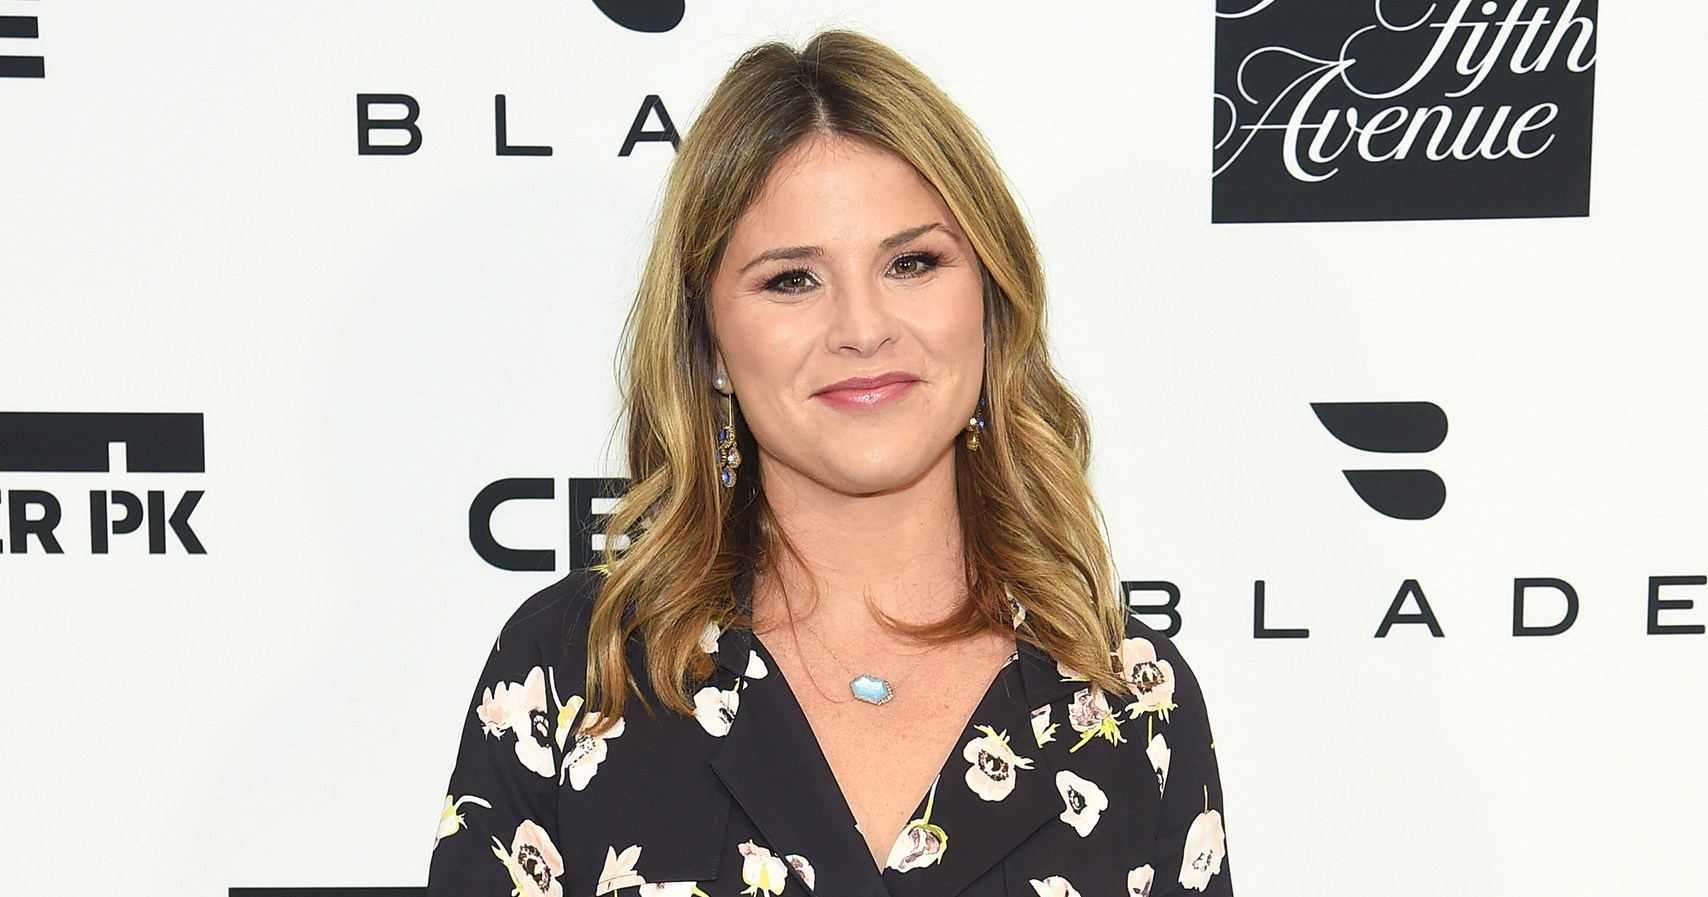 Jenna Bush Hager Suffered Ectopic Pregnancy: 'It's Very Isolating'